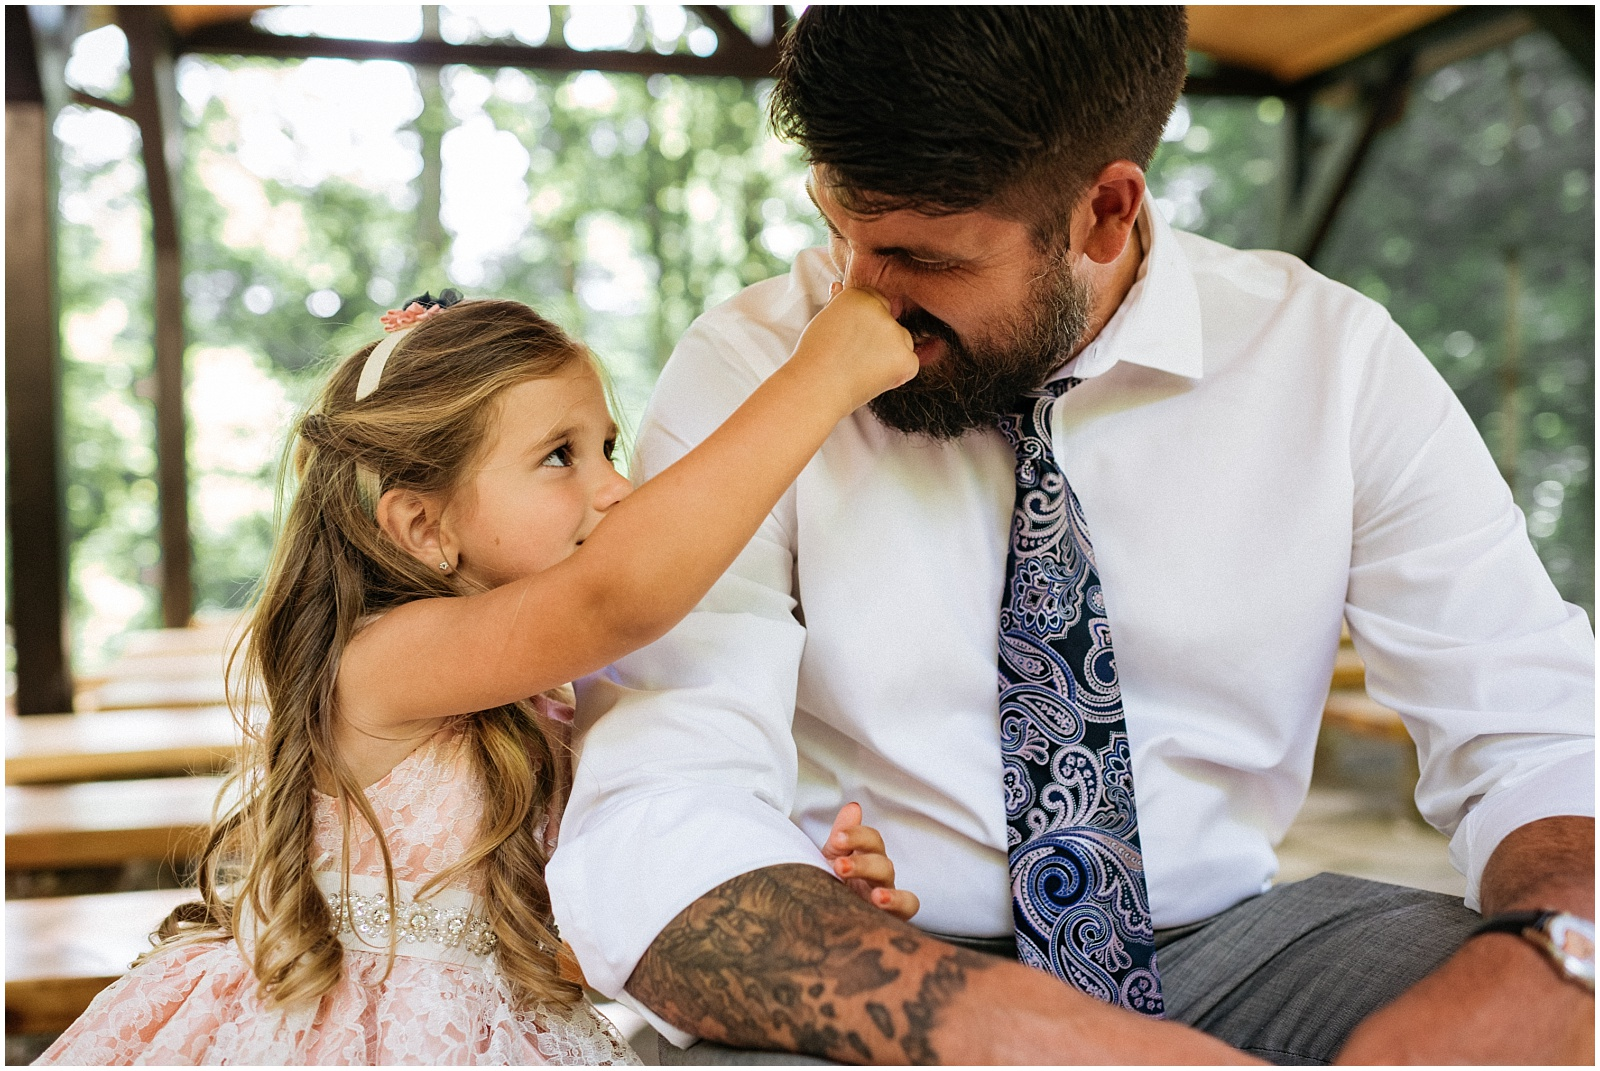 Daughter holding Dad's nose